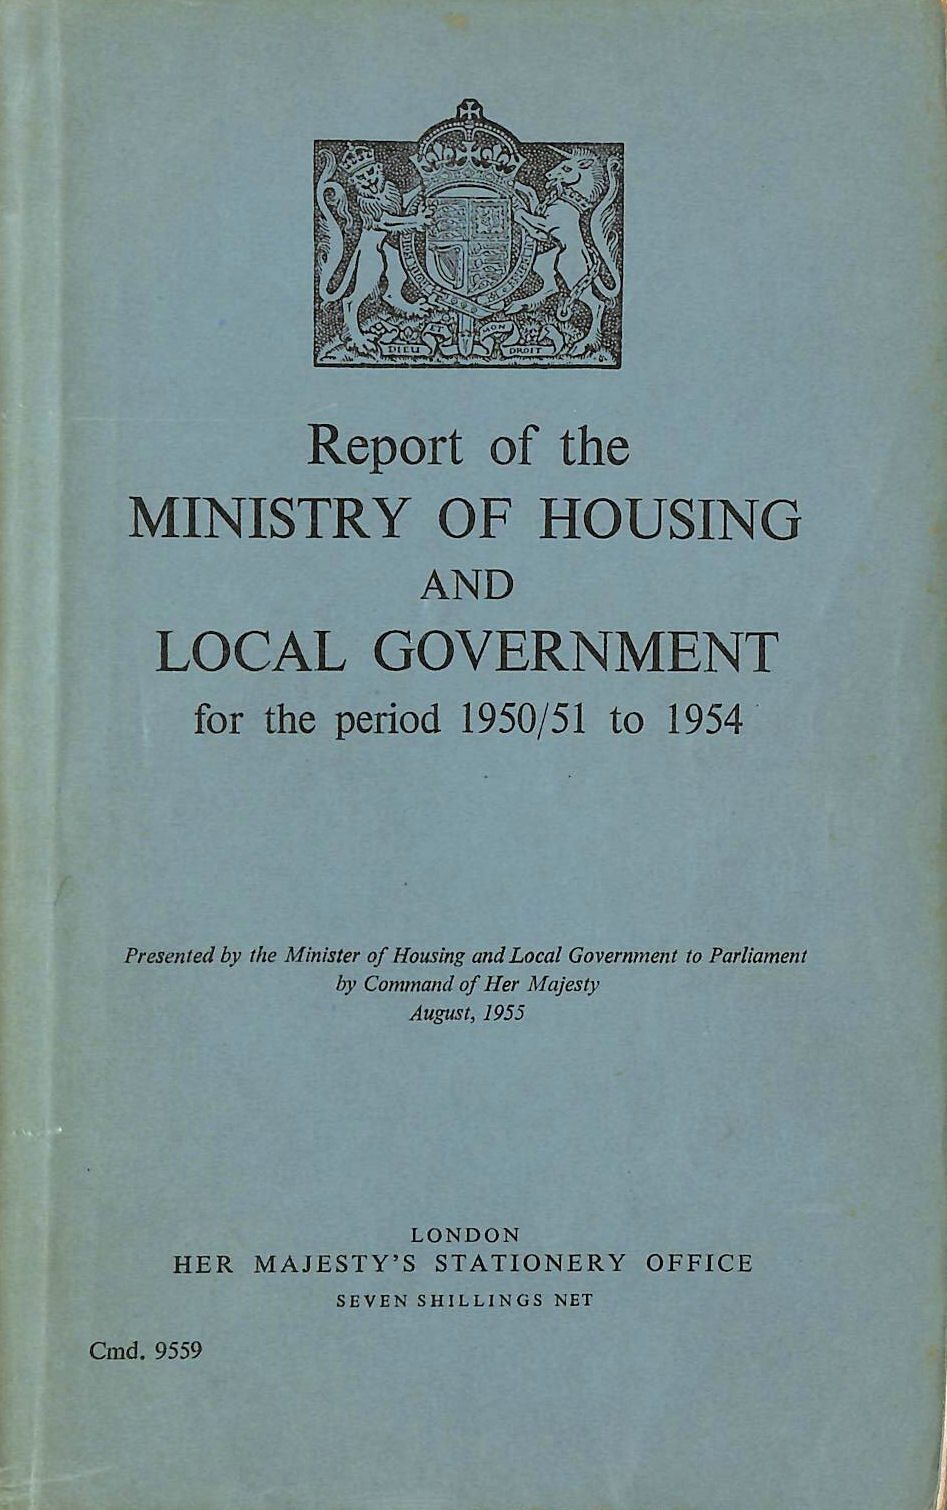 Image for Report of the Ministry of Housing and Local Government 1950 / 51 to 1954